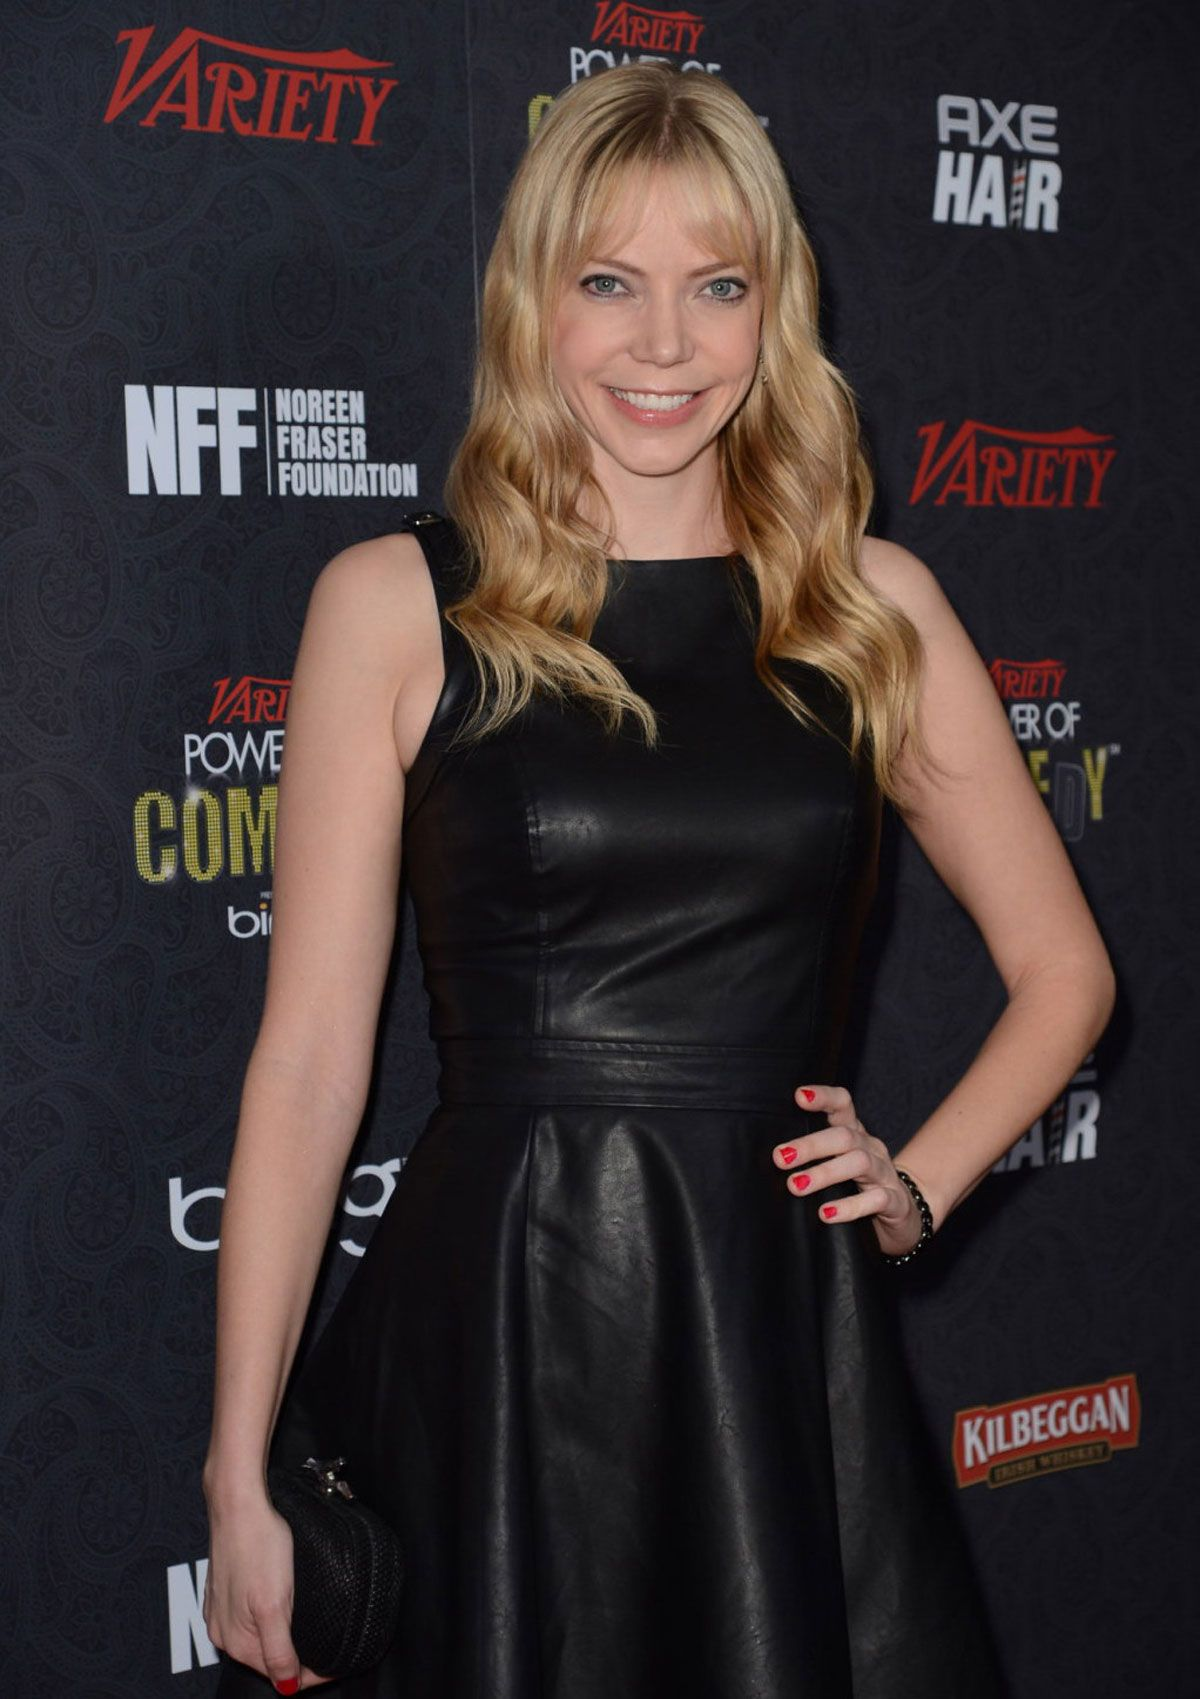 riki lindhome another periodriki lindhome big bang theory, riki lindhome buffy, riki lindhome another period, riki lindhome instagram, riki lindhome height, riki lindhome gallery, riki lindhome twitter, riki lindhome husband, riki lindhome imdb, riki lindhome boyfriend, riki lindhome and kate micucci, riki lindhome married, riki lindhome net worth, riki lindhome pictures, riki lindhome nudography